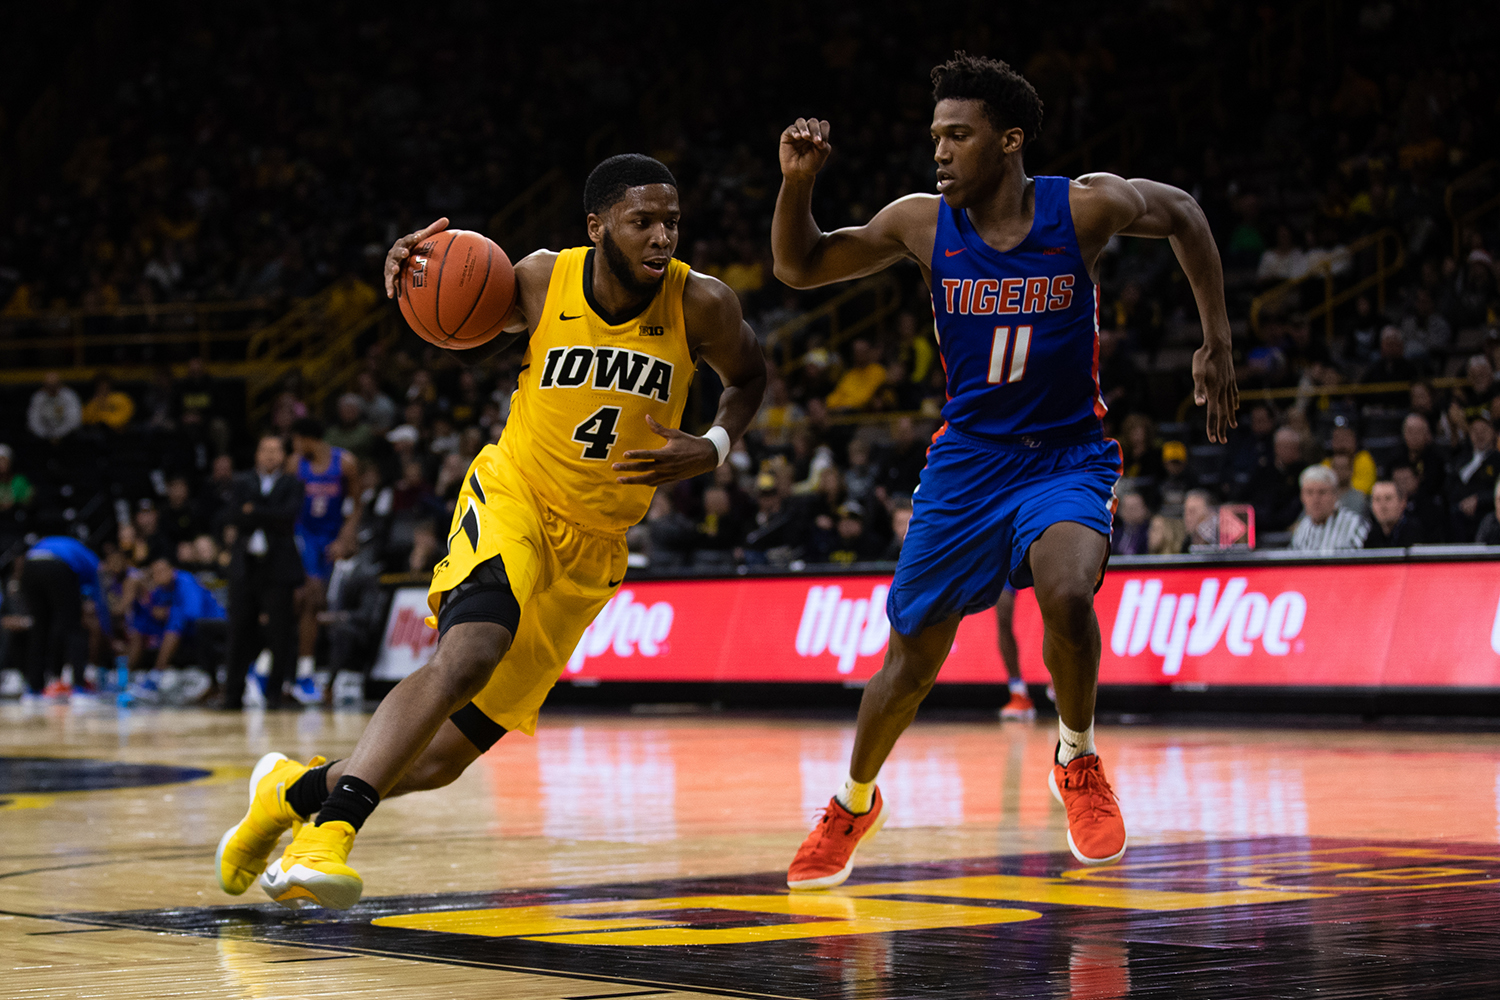 Iowa+guard+Isaiah+Moss+%234+drives+the+ball+up+the+paint+during+the+men%27s+basketball+game+against+Savannah+State+at+Carver-Hawkeye+Arena+on+Tuesday%2C+December+22%2C+2018.+The+Hawkeyes+defeated+the+Tigers+110-64.